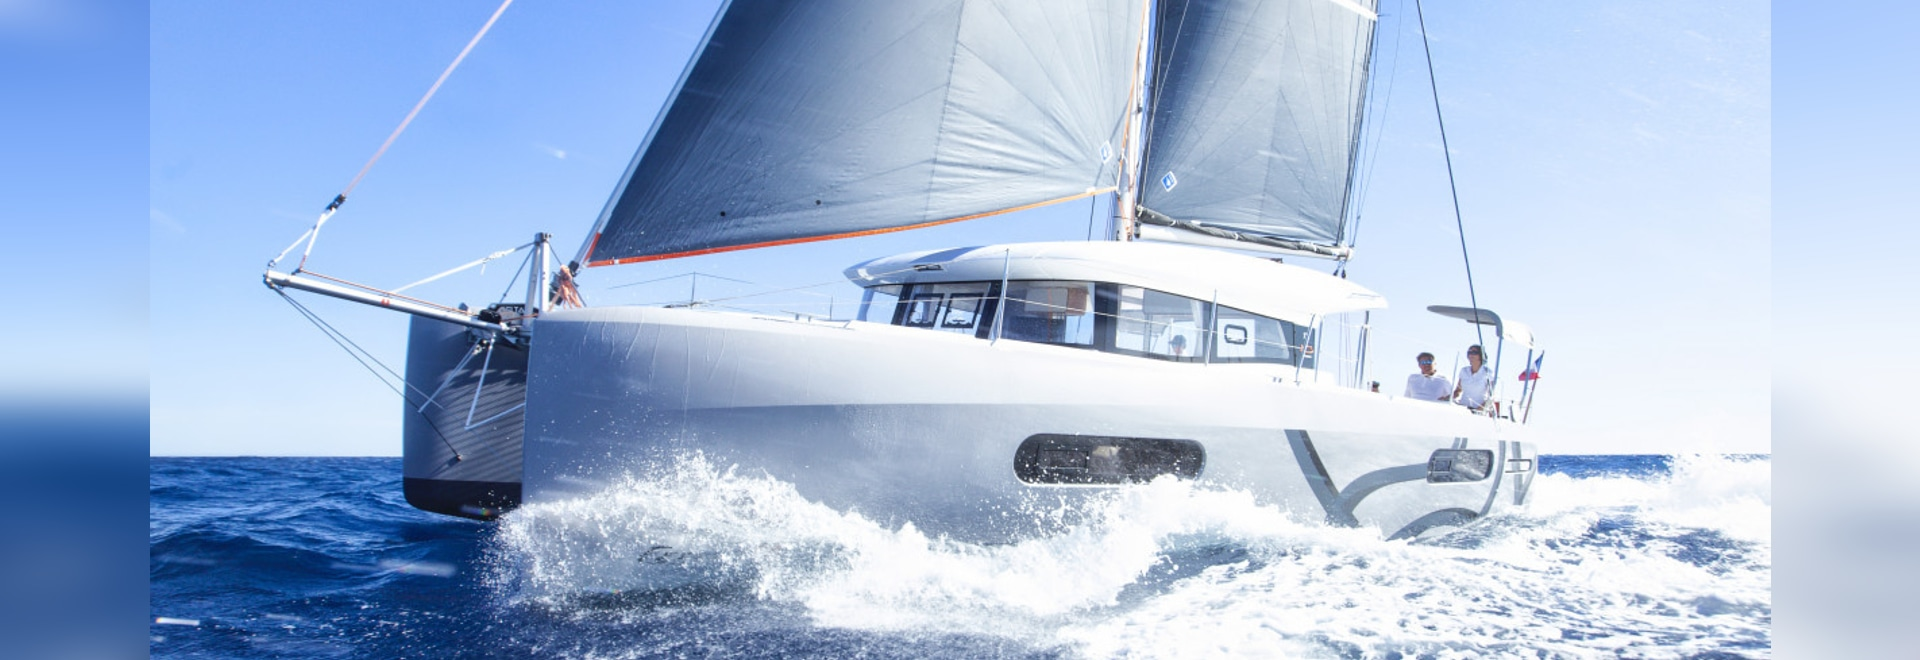 the new multihull brand from Beneteau Groupe, Excess is on a mission to put the fun back into mainstream multihull cruising. It's aimed squarely at experienced sailors who want the generous living ...